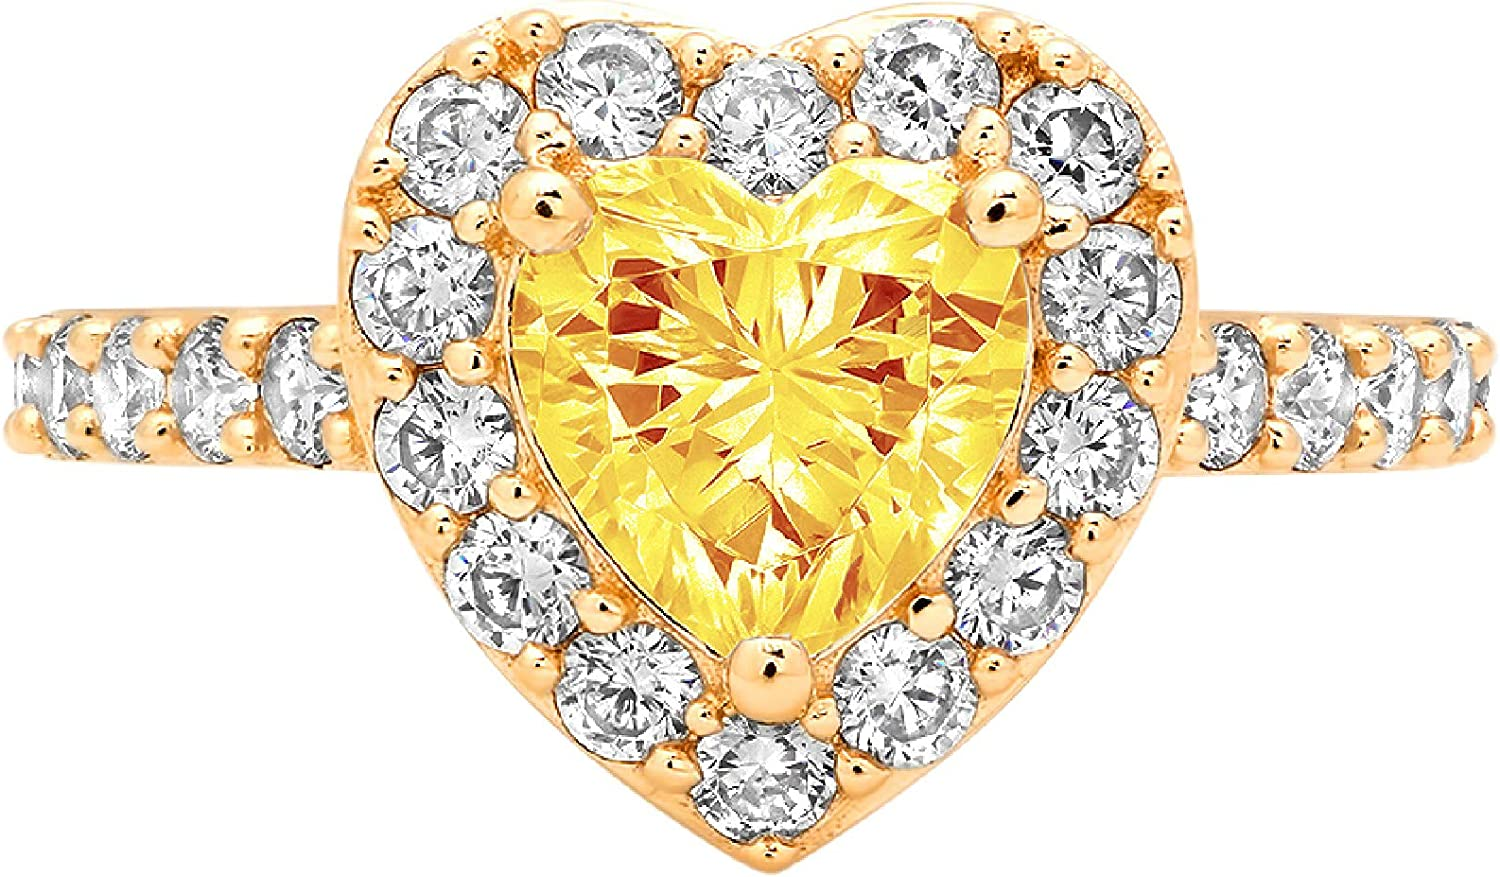 2.19ct Brilliant Heart Cut Solitaire with Accent Halo Natural Yellow Citrine Gemstone Ideal VVS1 Engagement Promise Statement Anniversary Bridal Wedding ring 14k Yellow Gold